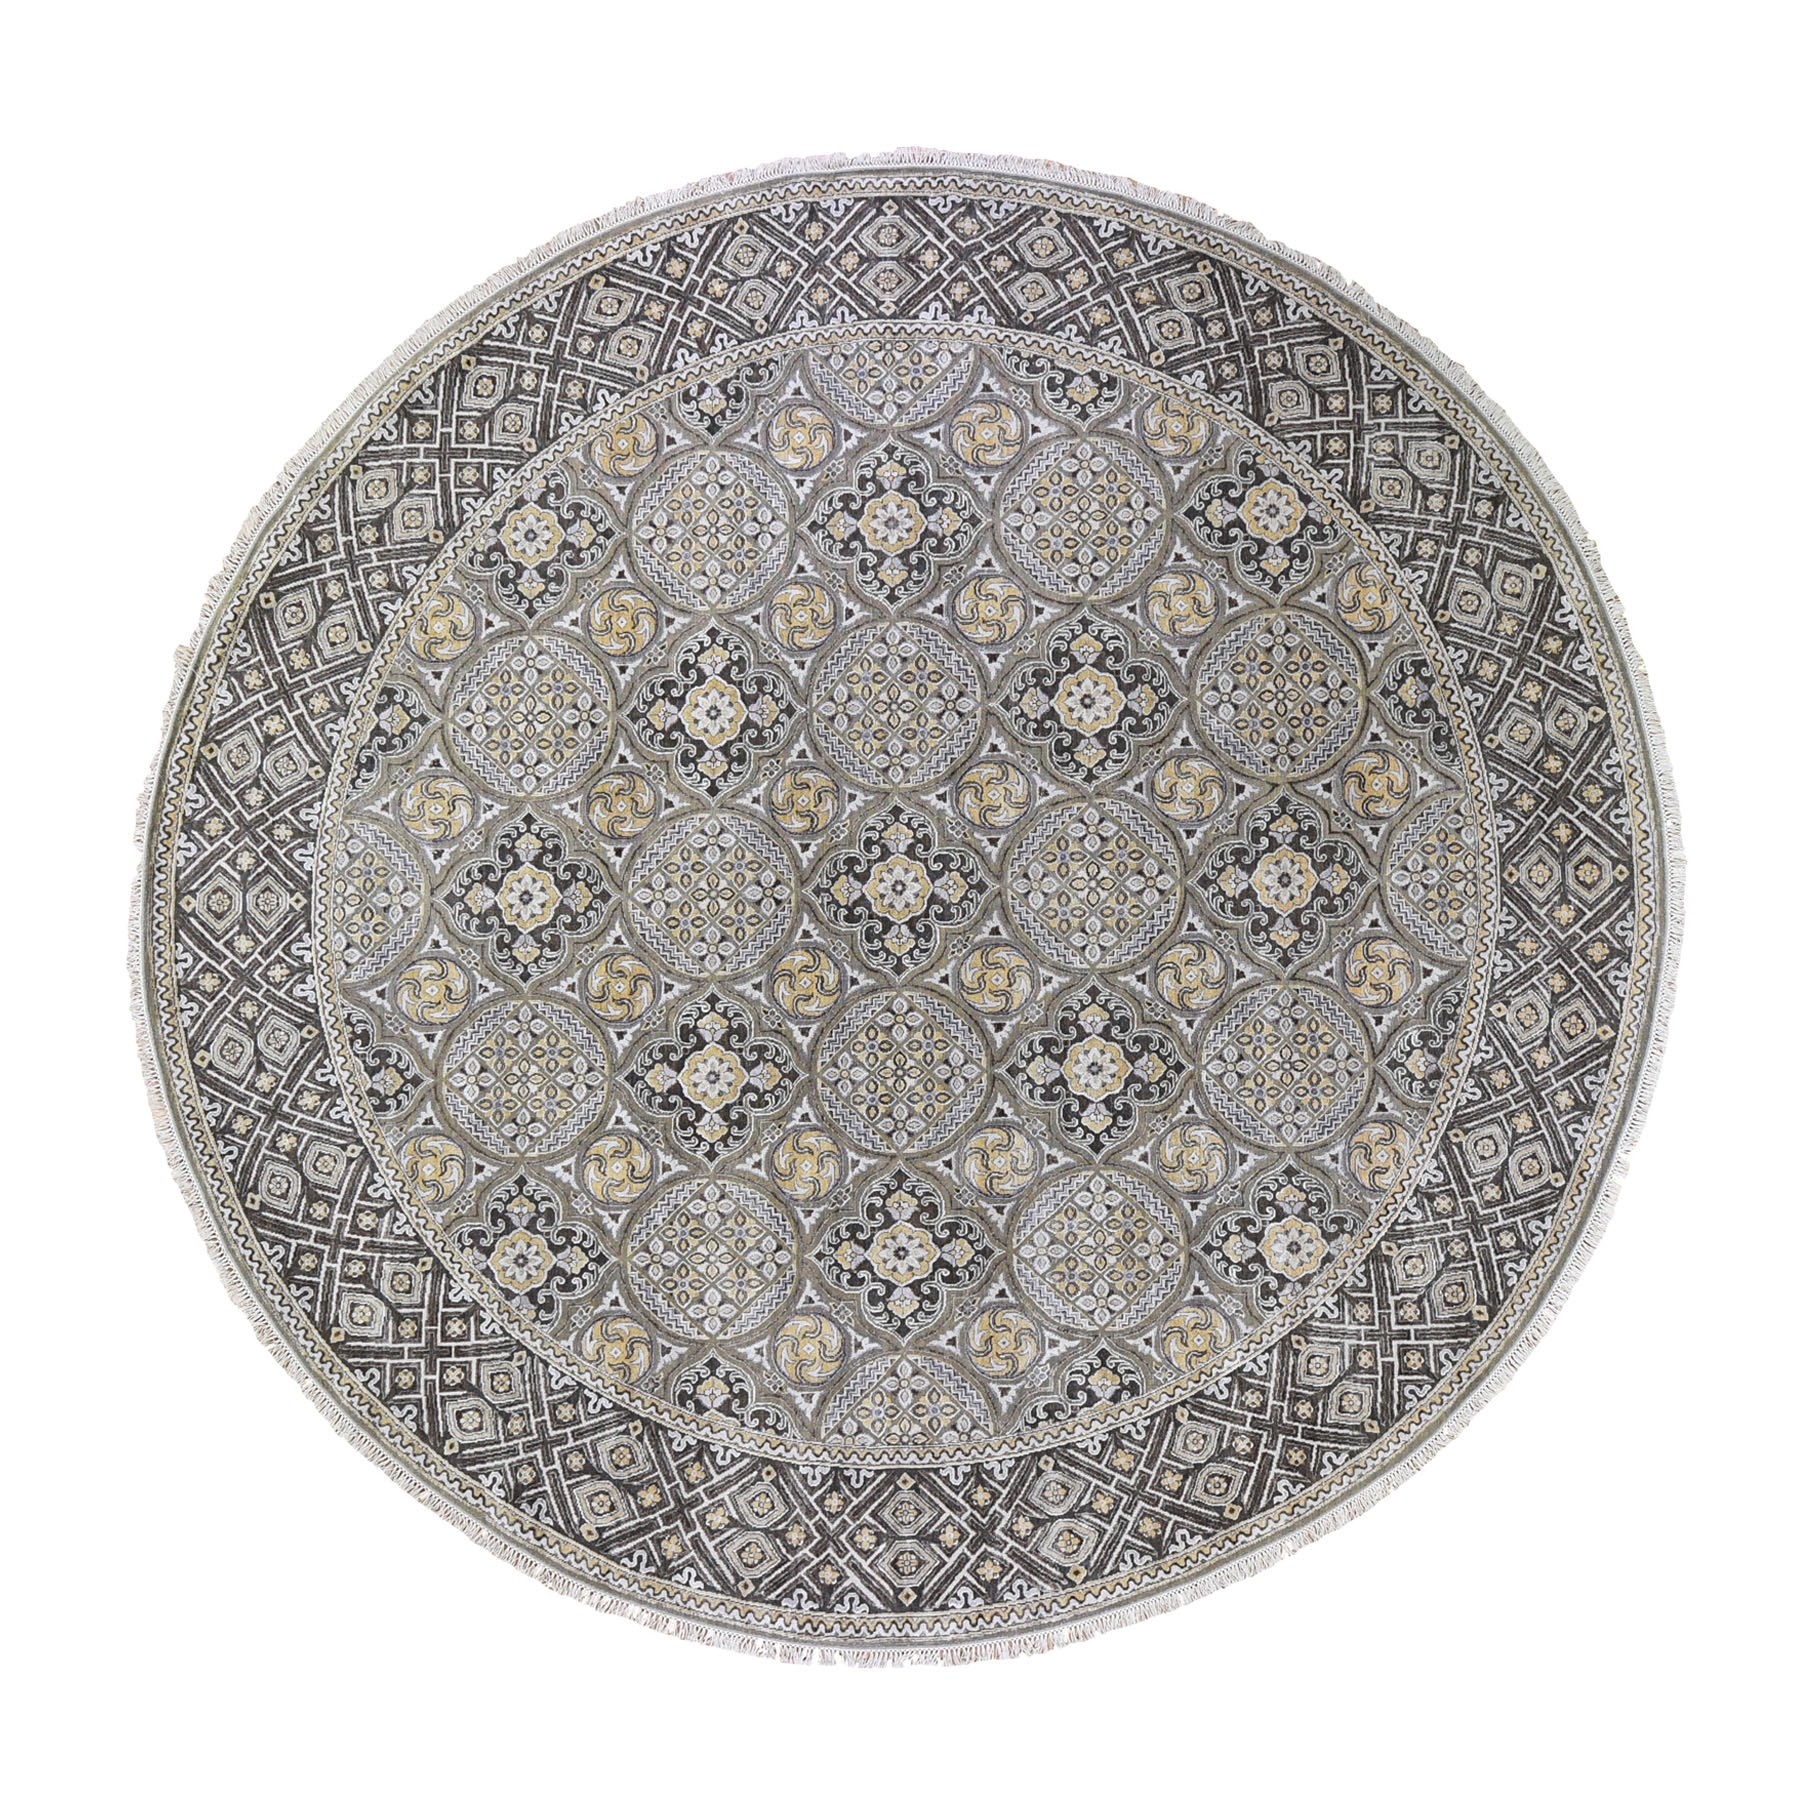 "12'1""X12'5"" Oversized Round Silk With Textured Wool Mughal Inspired Medallions Hand Knotted Oriental Rug moad9dad"